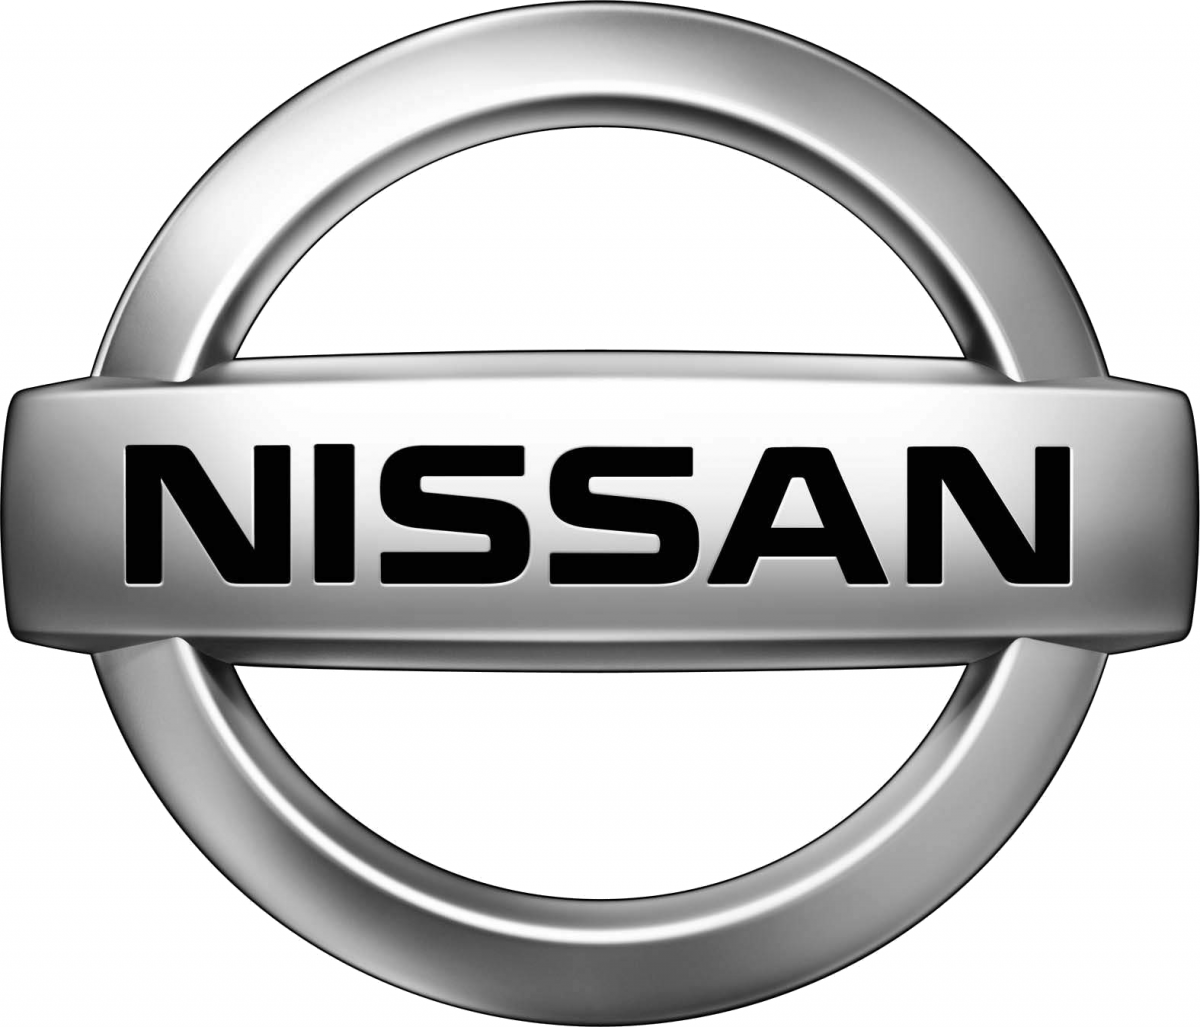 accountant specialist for nissan egypt 2016